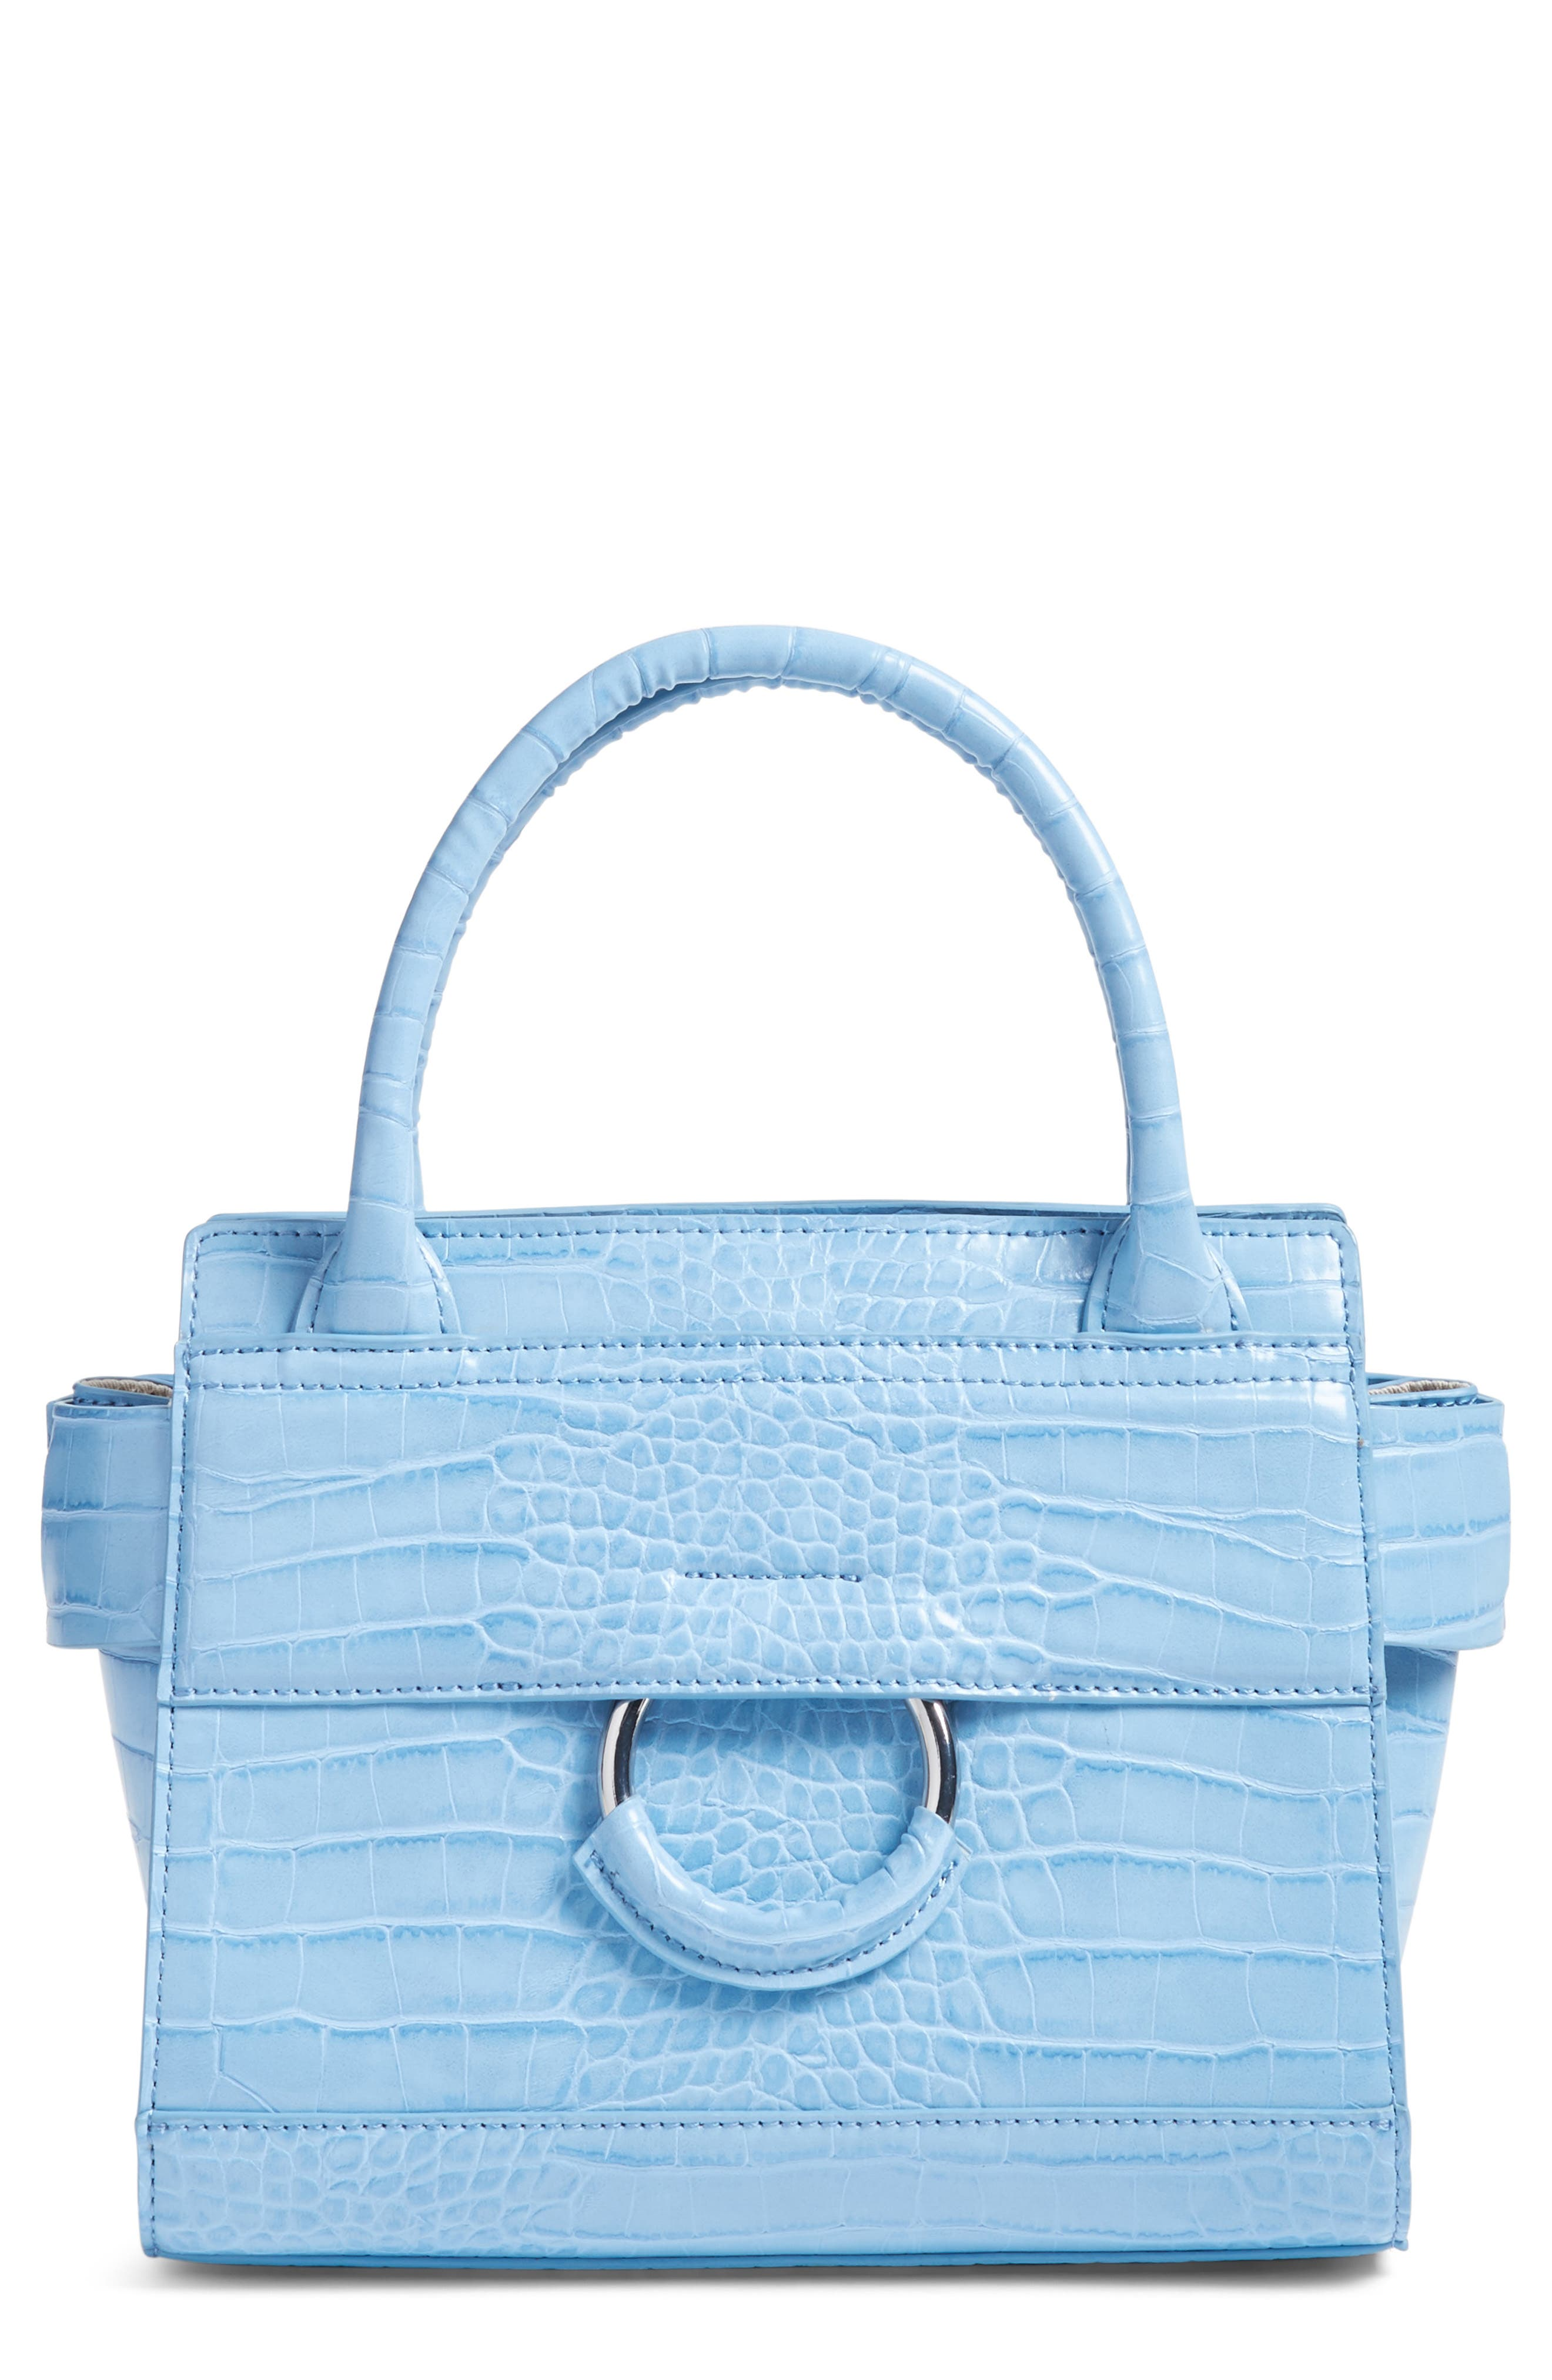 Main Image - Sam Edelman Mini Chiara Faux Leather Satchel